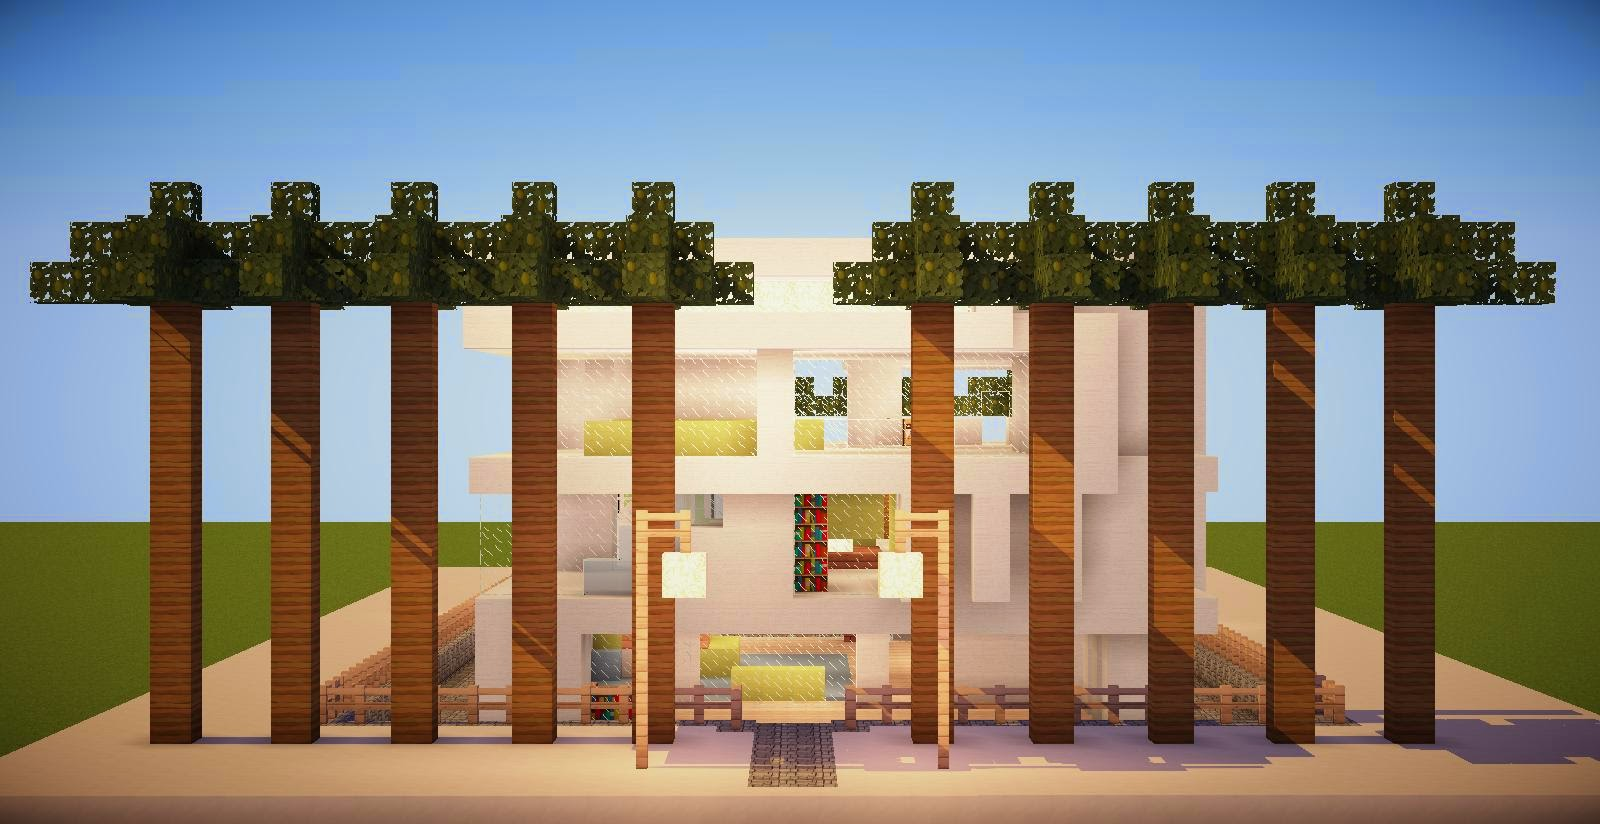 Casas modernas no minecraft for Casas modernas minecraft keralis